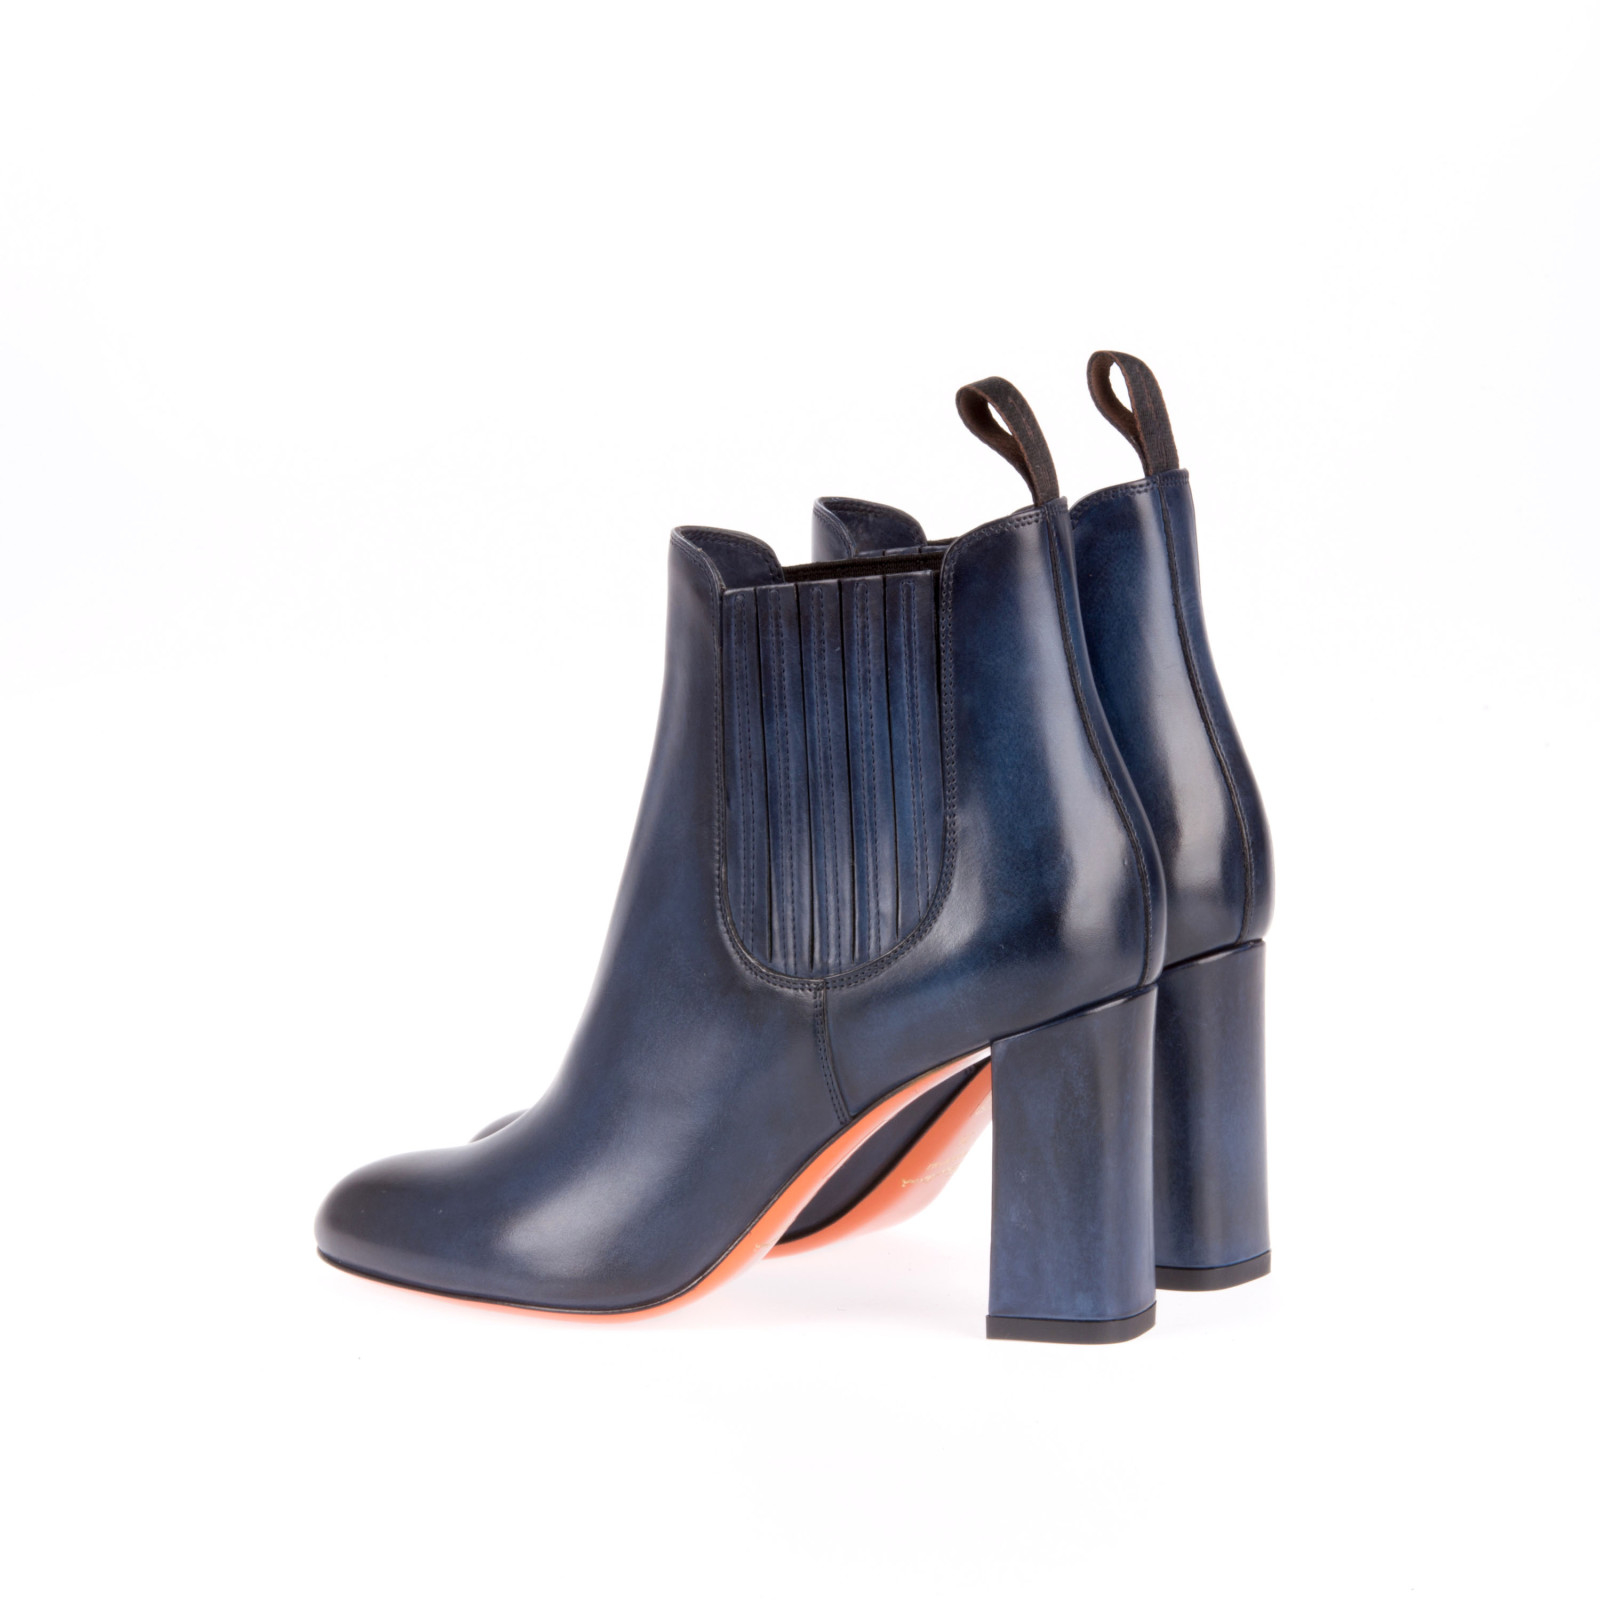 Blue Leather Ankle Boots - Boot Hto